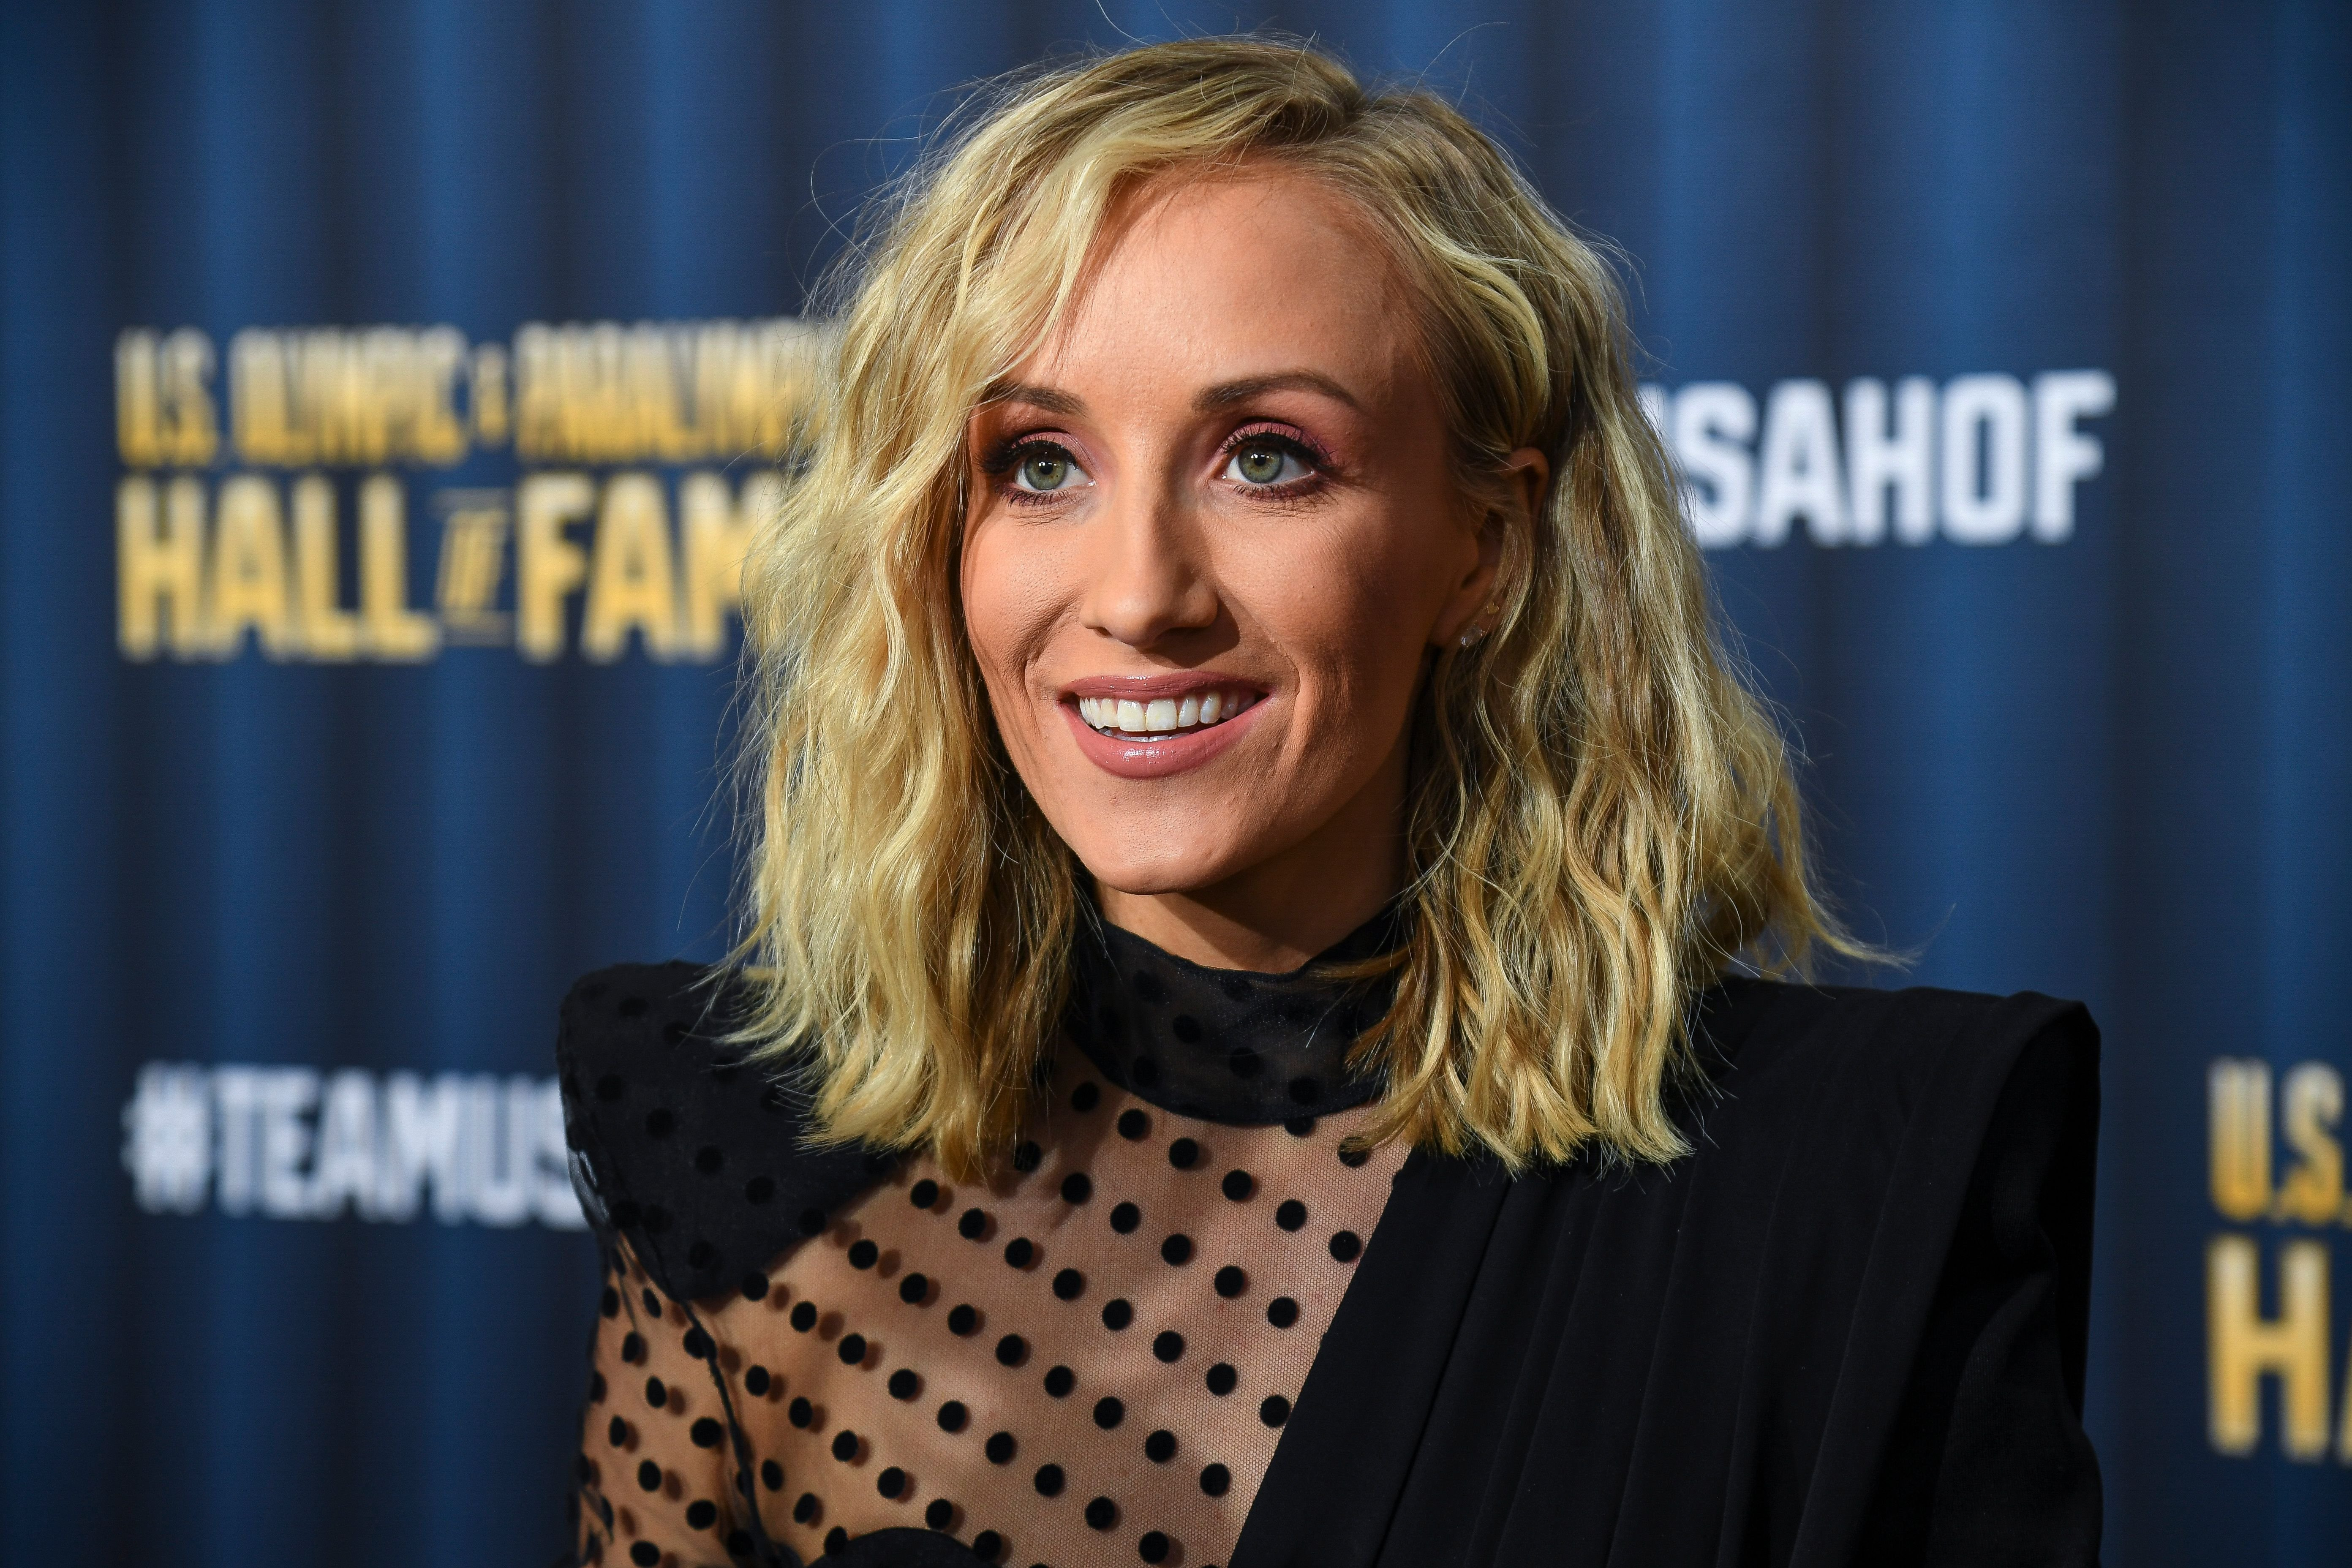 Nastia Liukin on the red carpet before the U.S. Olympic Hall of Fame Class of 2019 Induction Ceremony on November 1, 2019   Photo: Getty Images